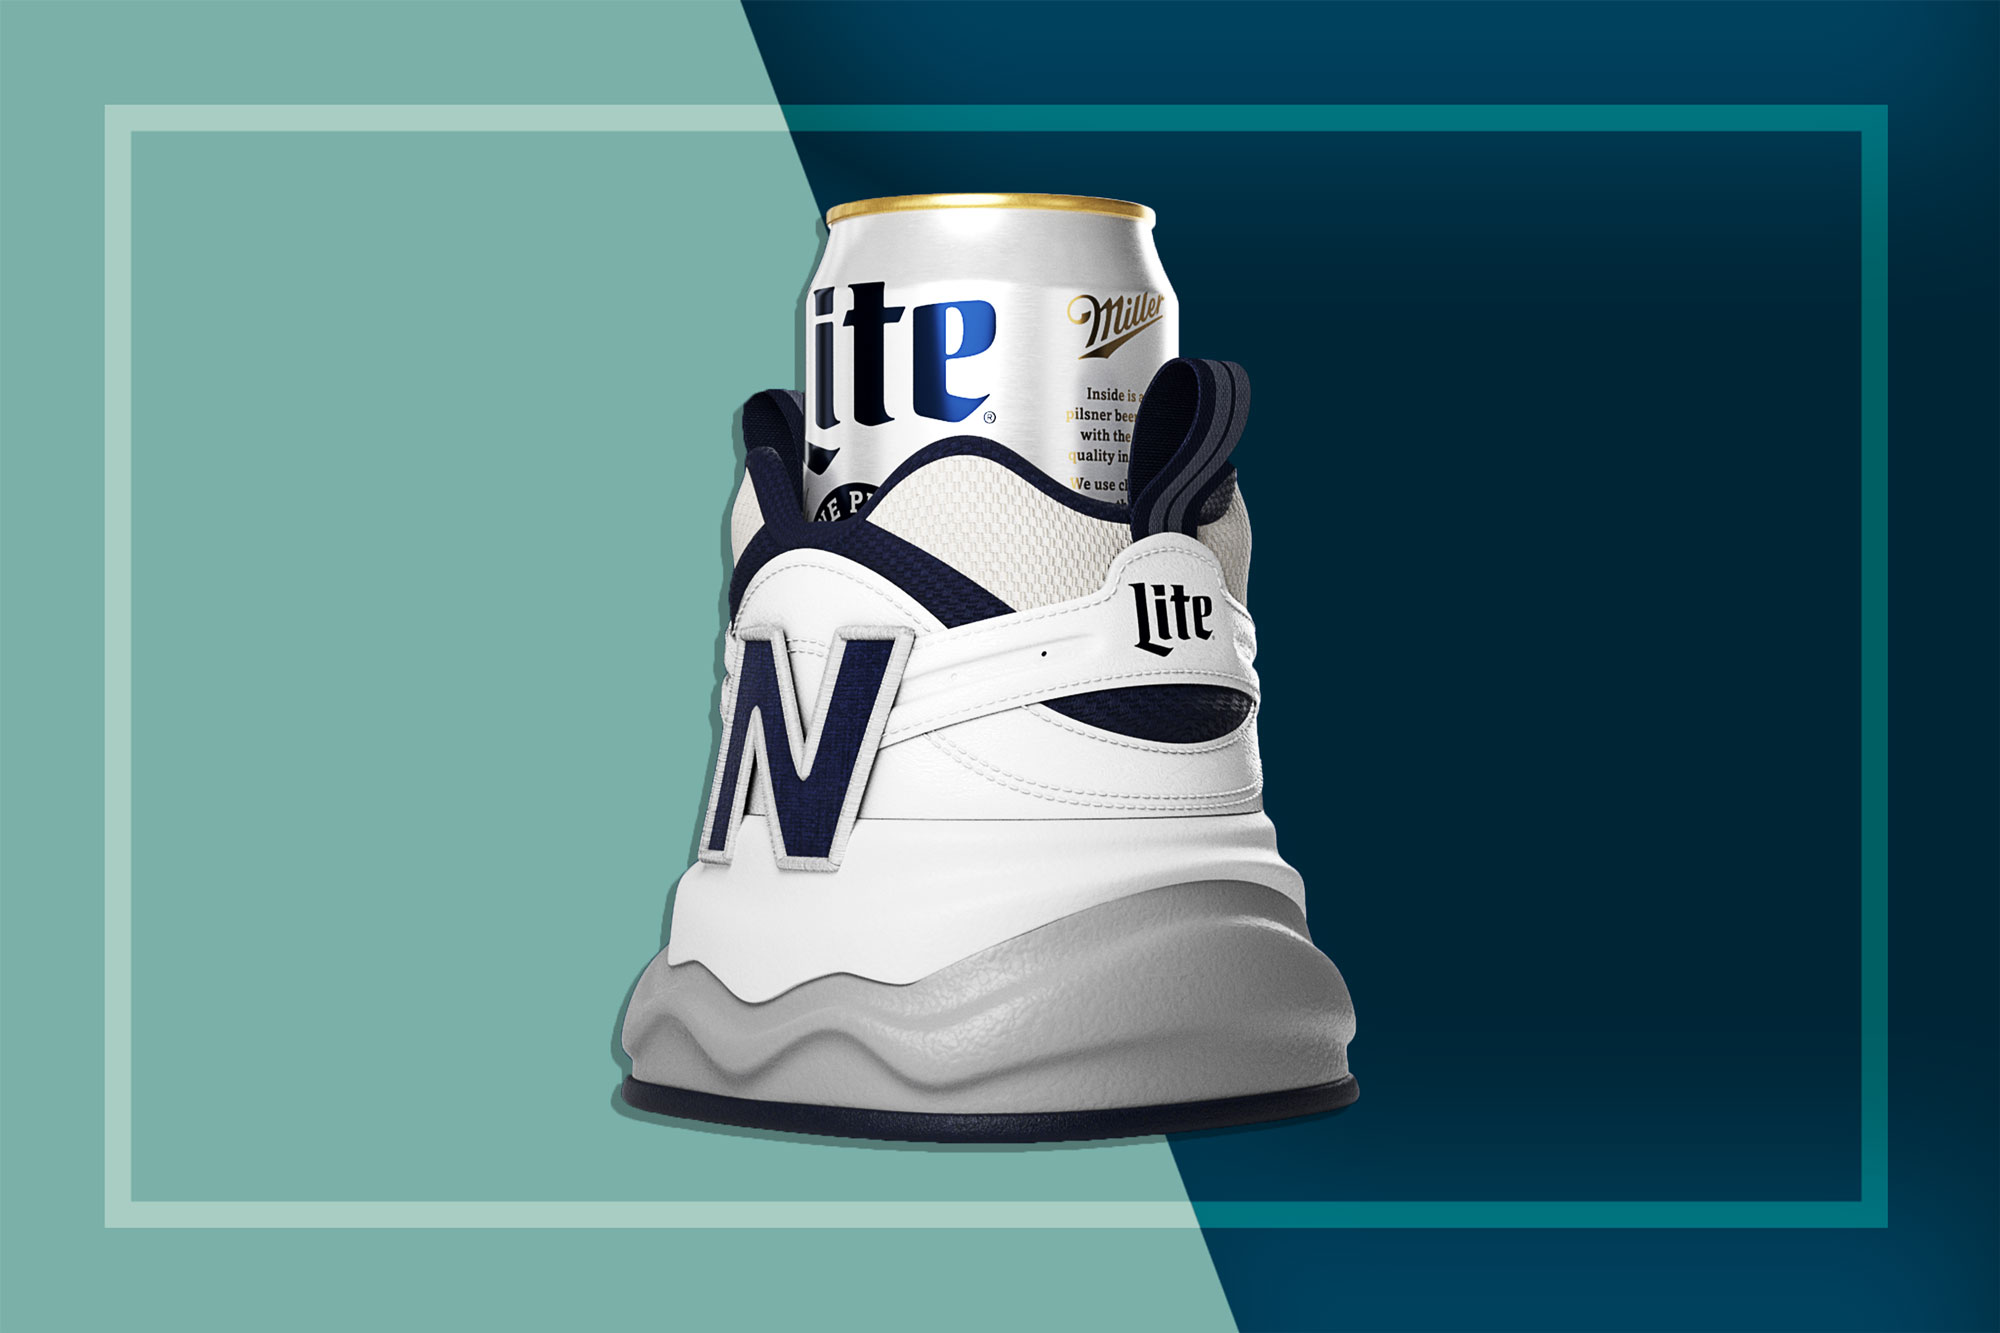 Shoe-shaped beer holding by New Balance x Miller Lite